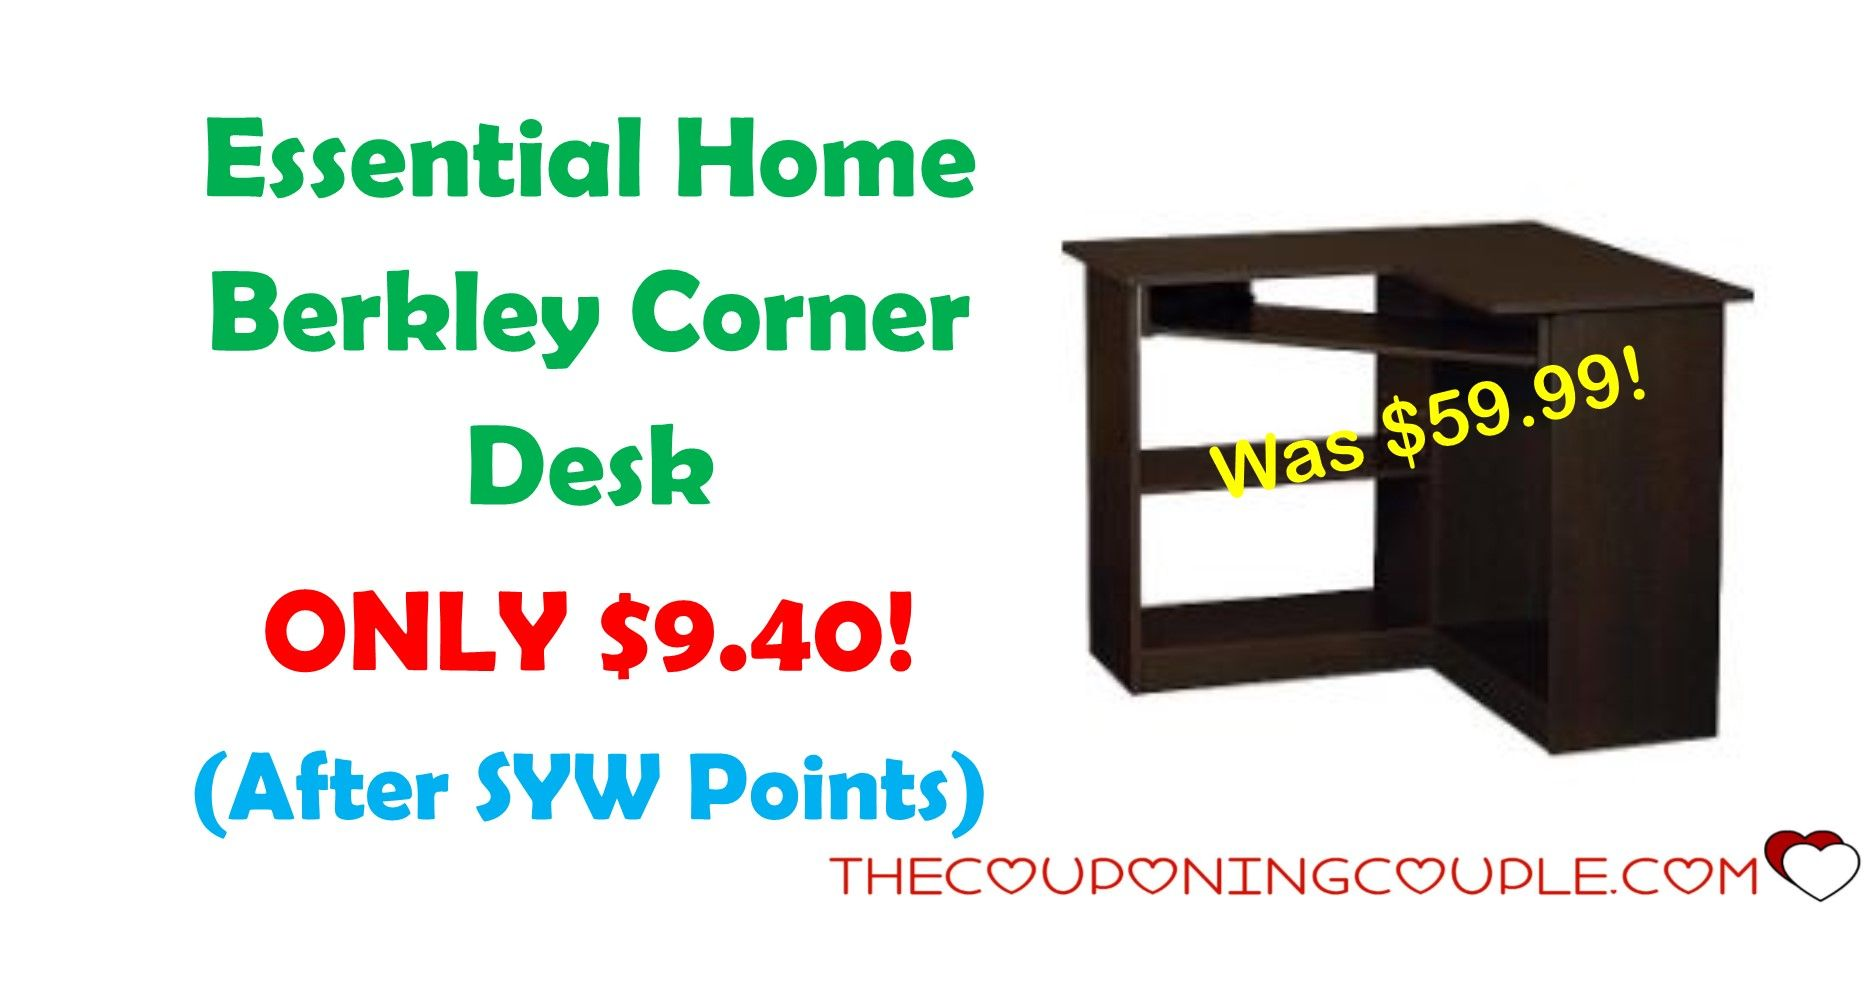 Don't miss out on this Essential home Berkley Corner Desk for ONLY $9.40 (was $59.99)! Perfect desk for a small area!  Click the link below to get all of the details ► http://www.thecouponingcouple.com/essential-home-berkley-corner-desk/ #Coupons #Couponing #CouponCommunity  Visit us at http://www.thecouponingcouple.com for more great posts!